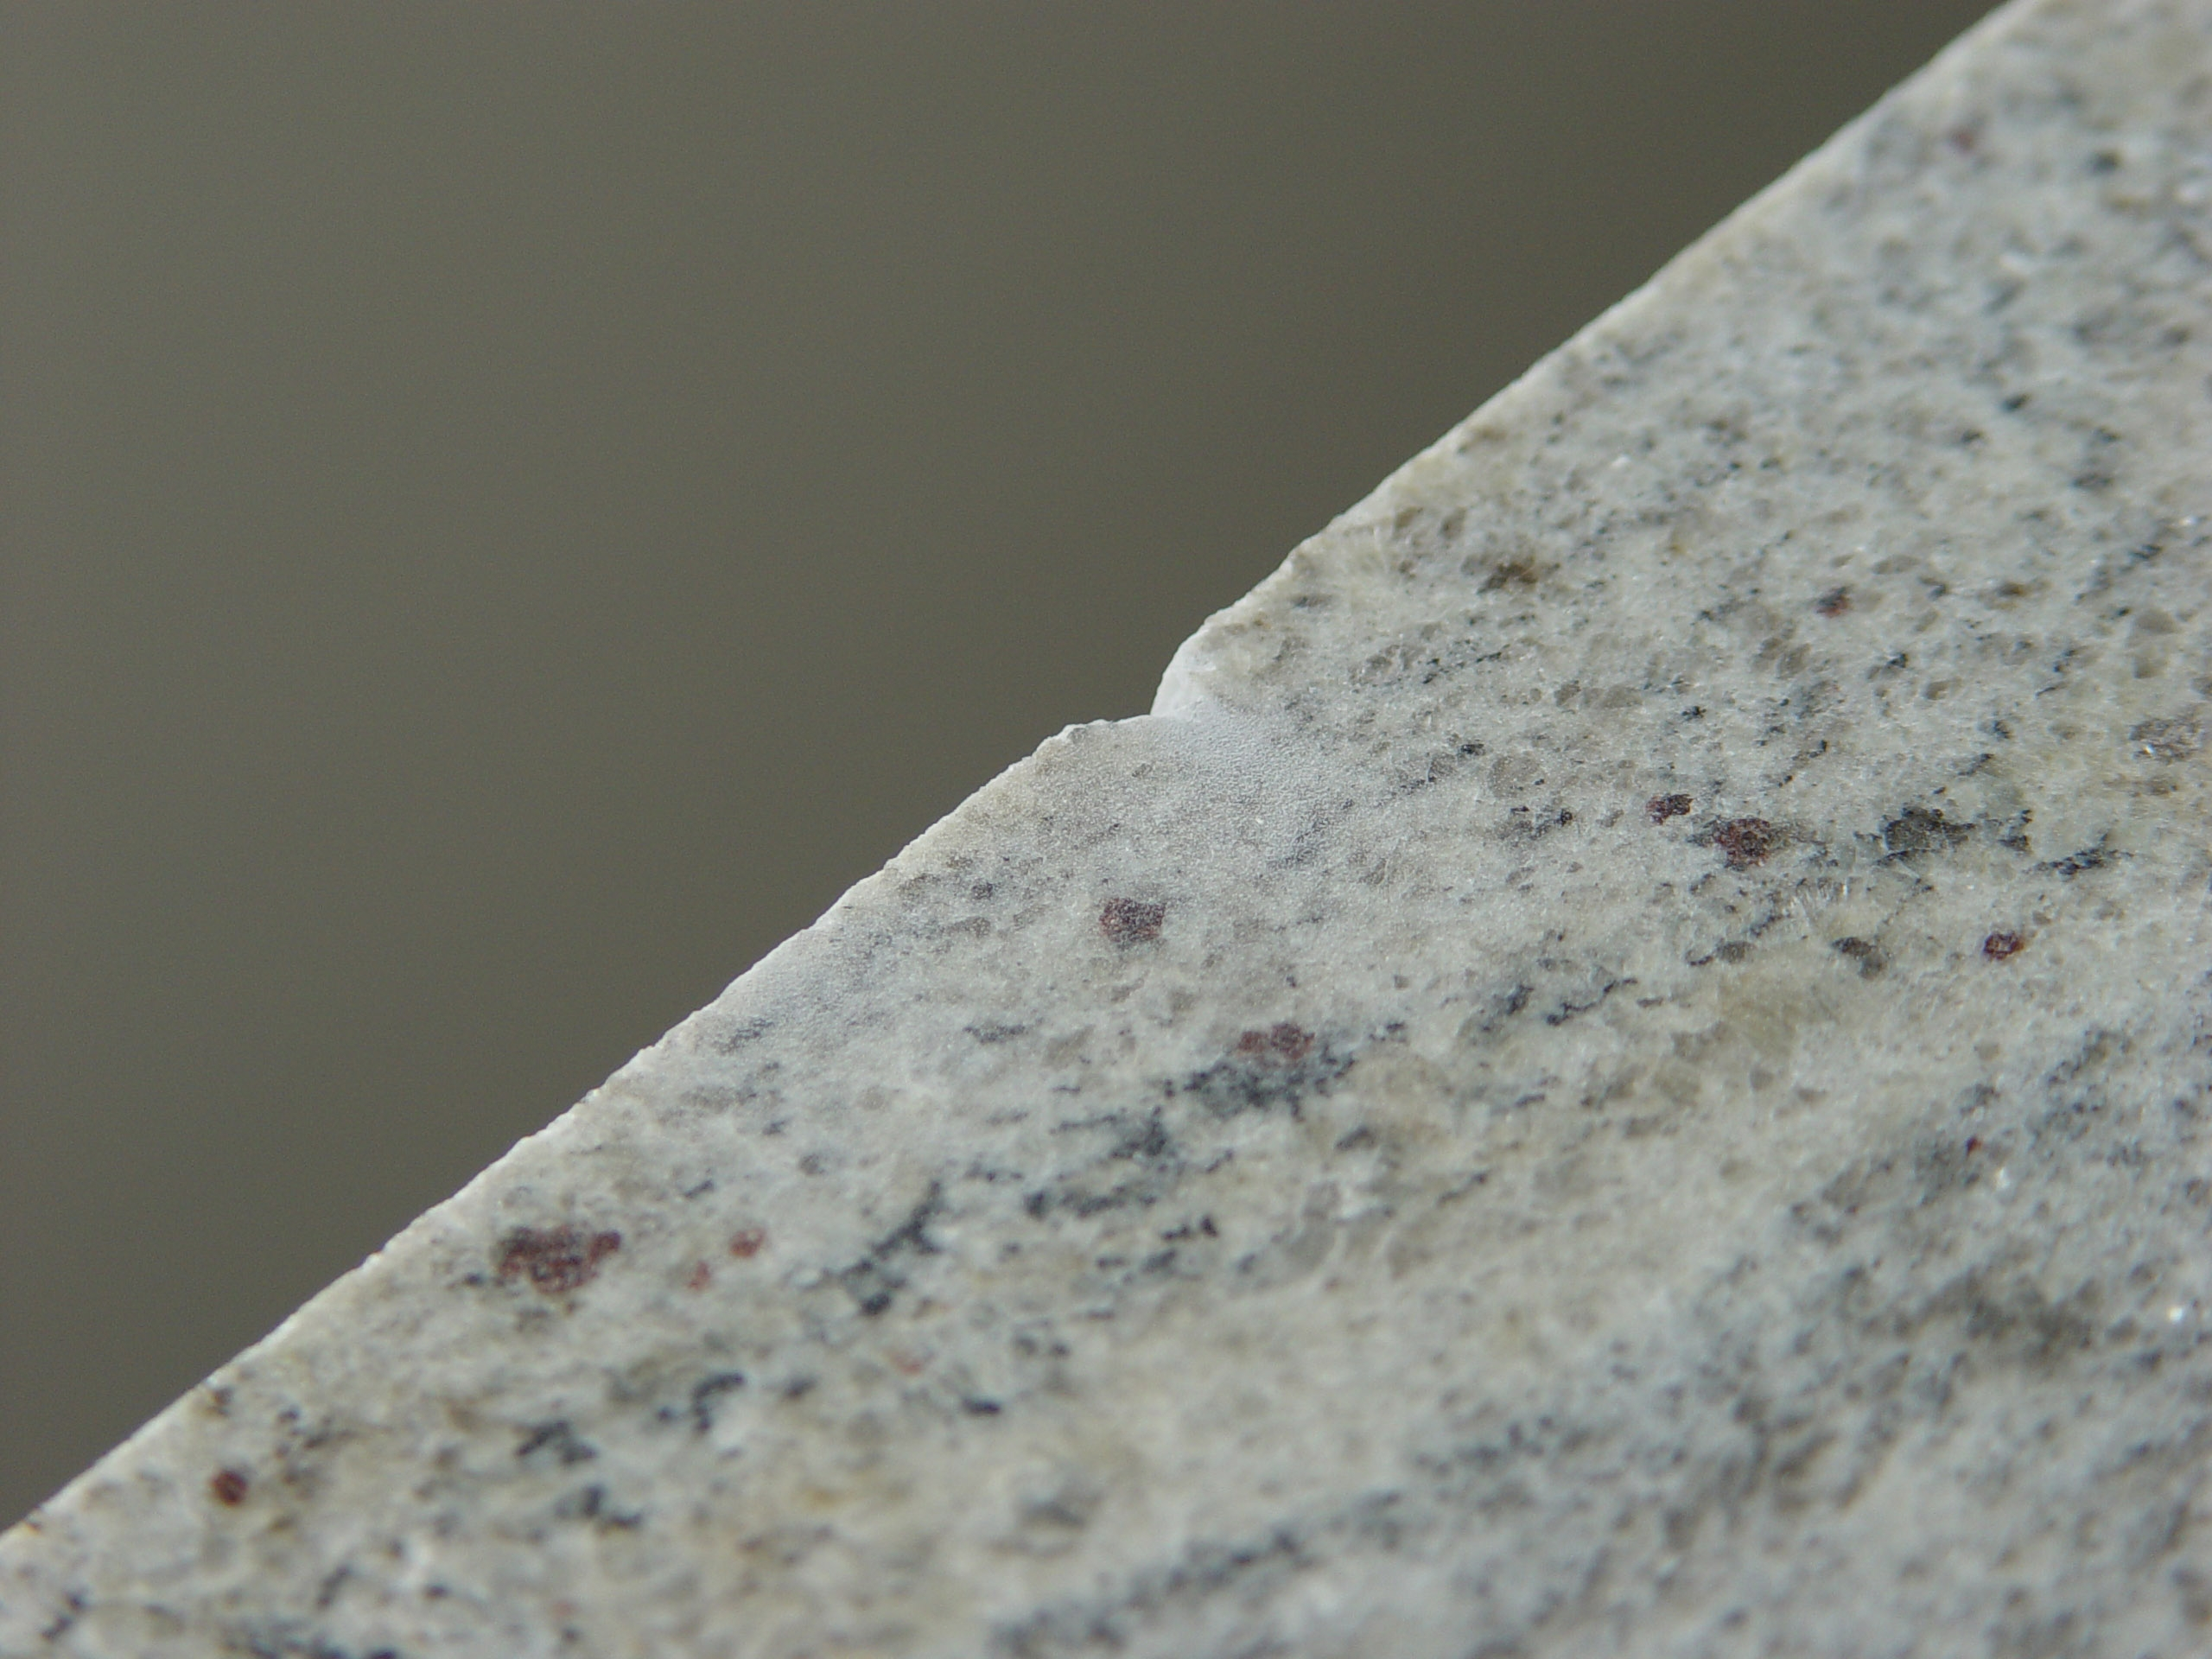 Granite Countertop Edge Chip Repair : Damaged granite and stone worktops restored to as good as new